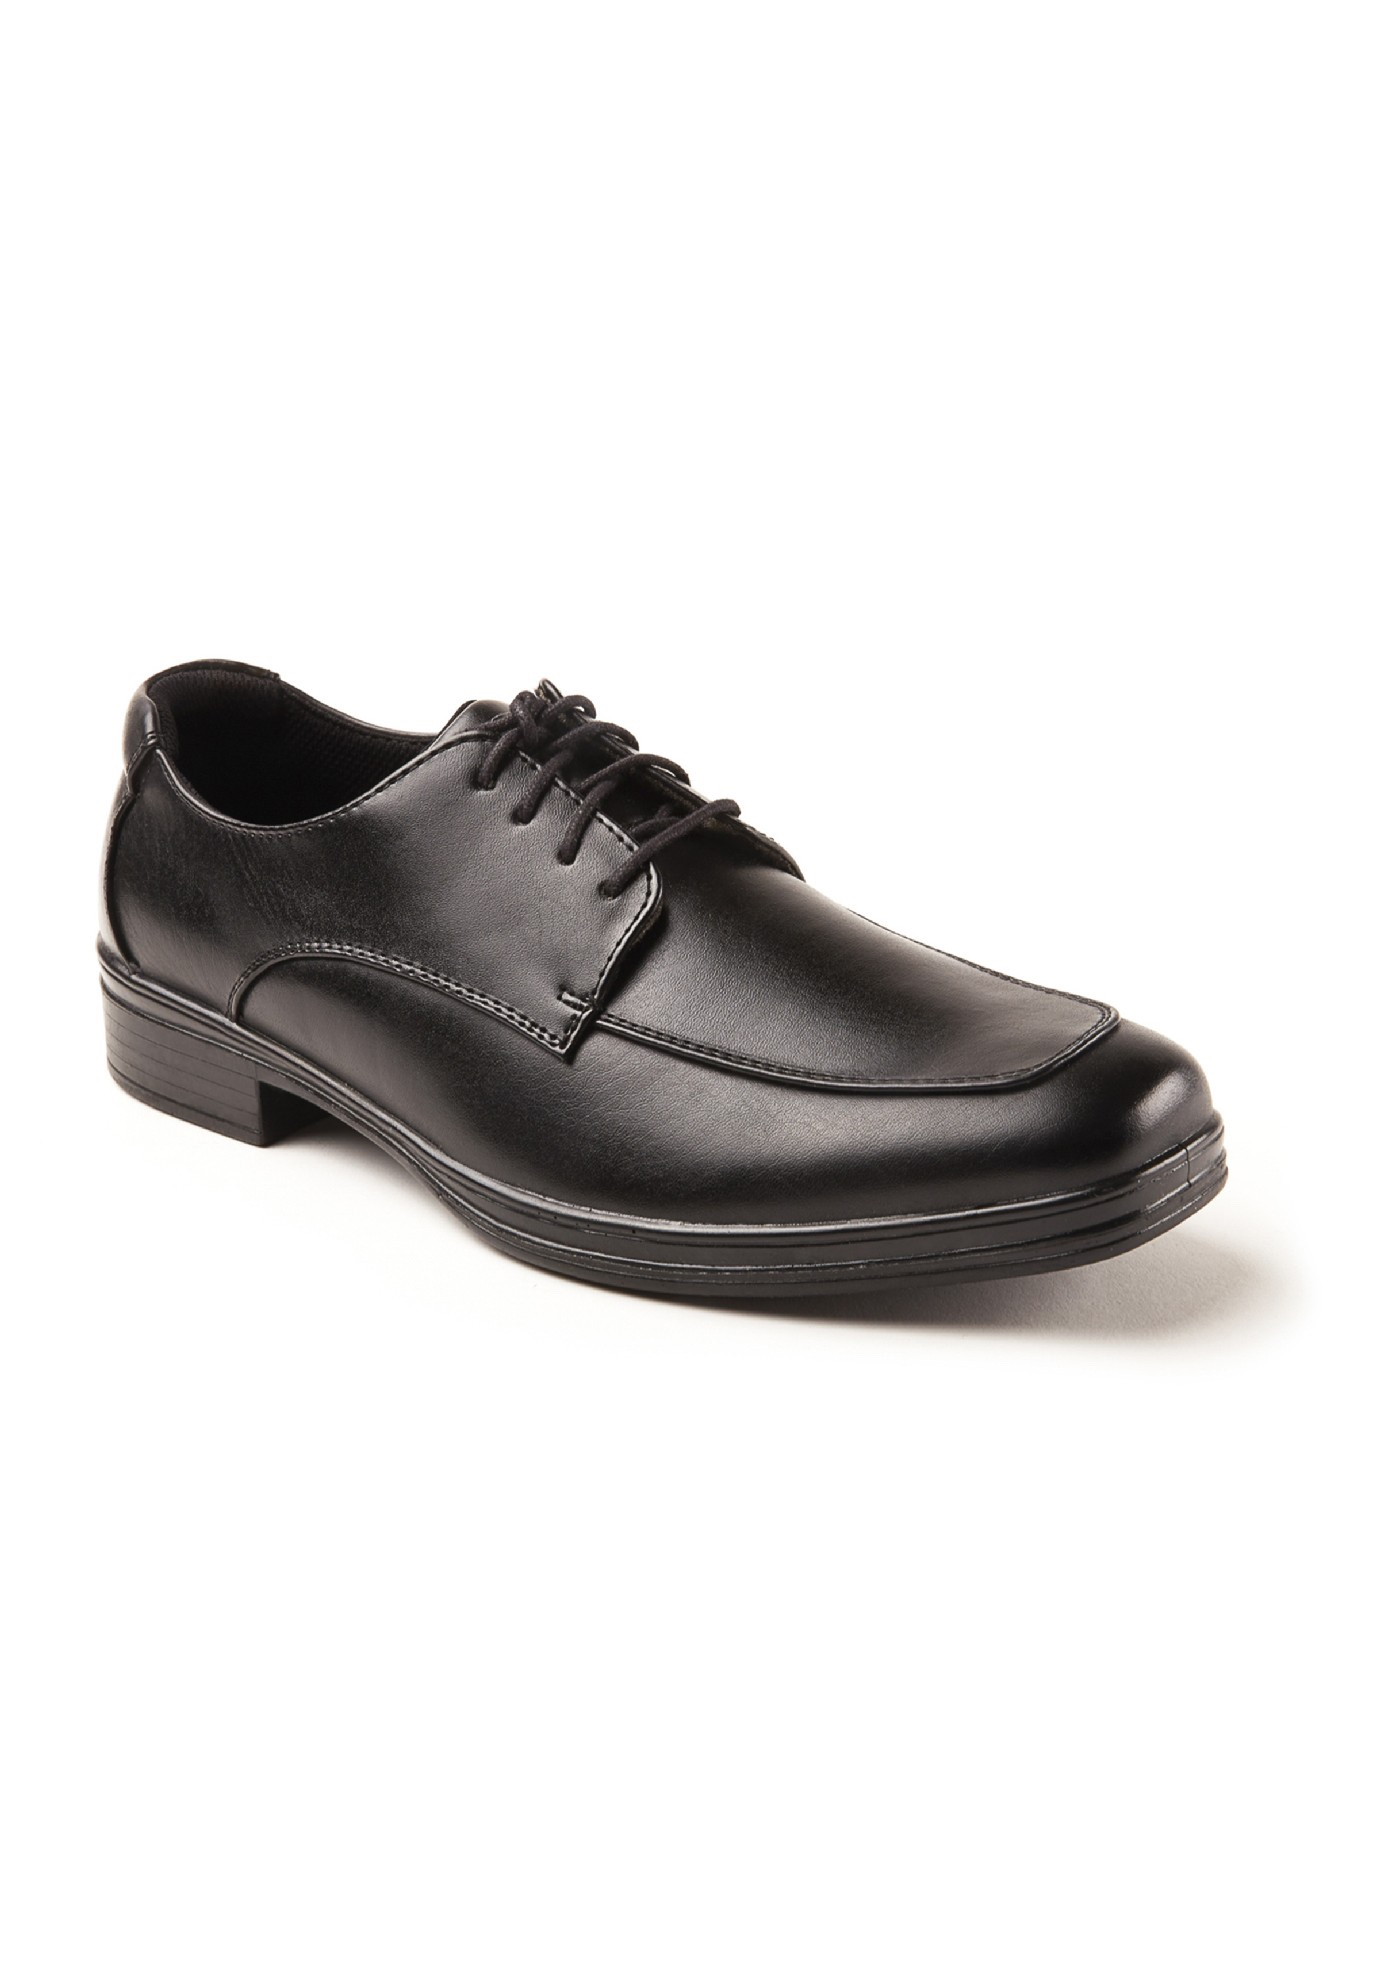 Deer Stags® Comfort Oxford Shoes,